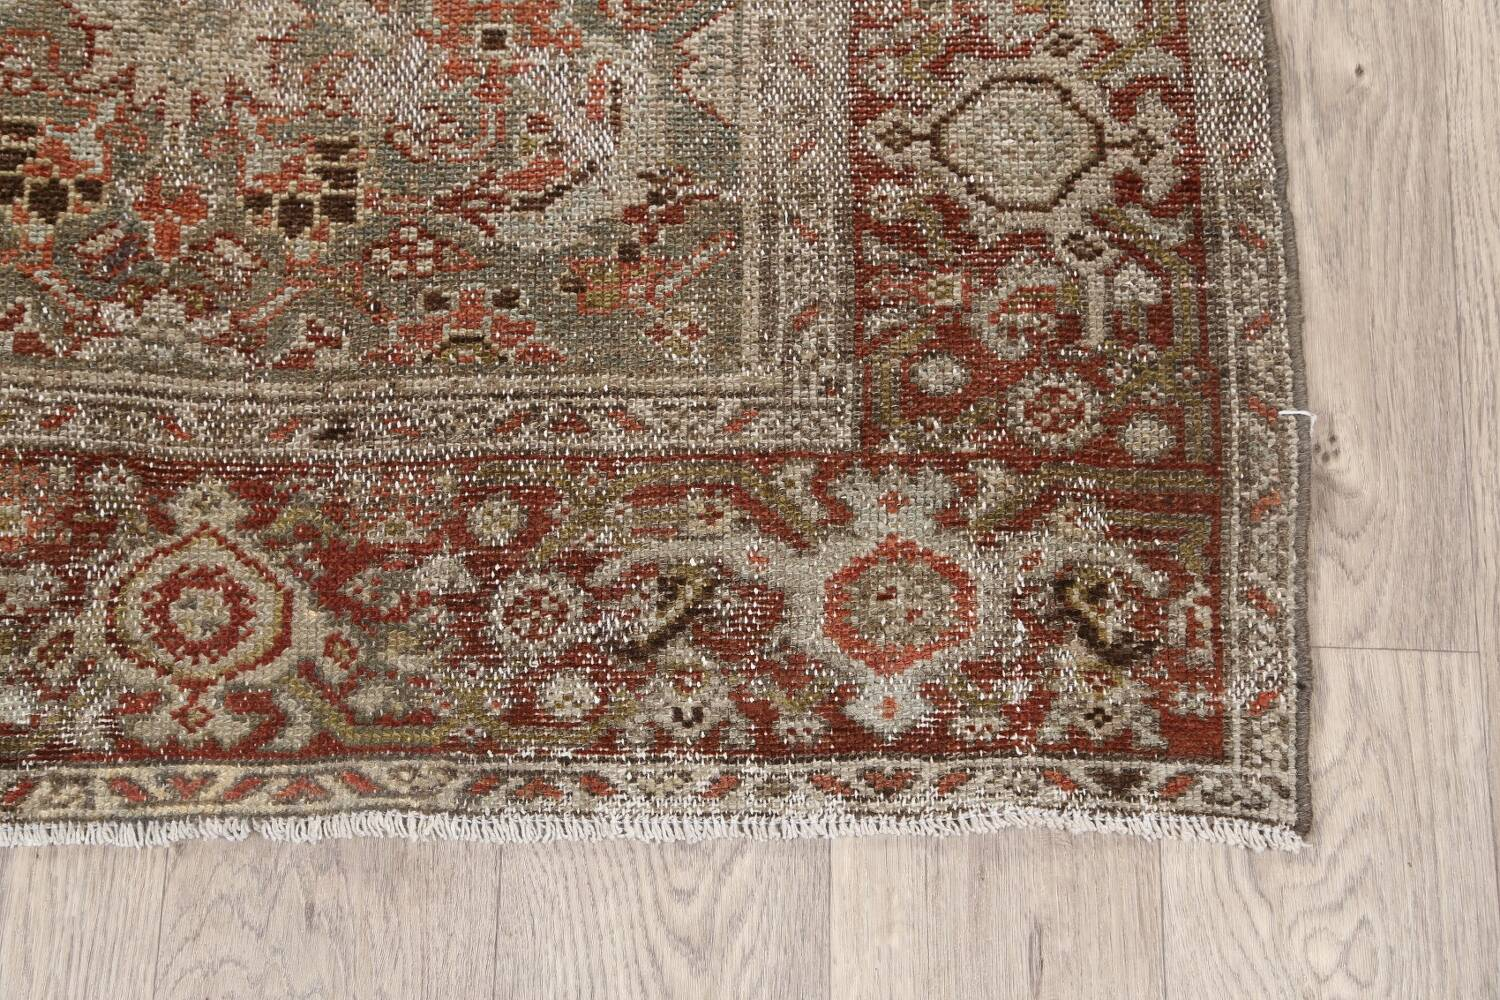 Pre-1900 Antique Malayer Persian Runner Rug 2x16 image 5